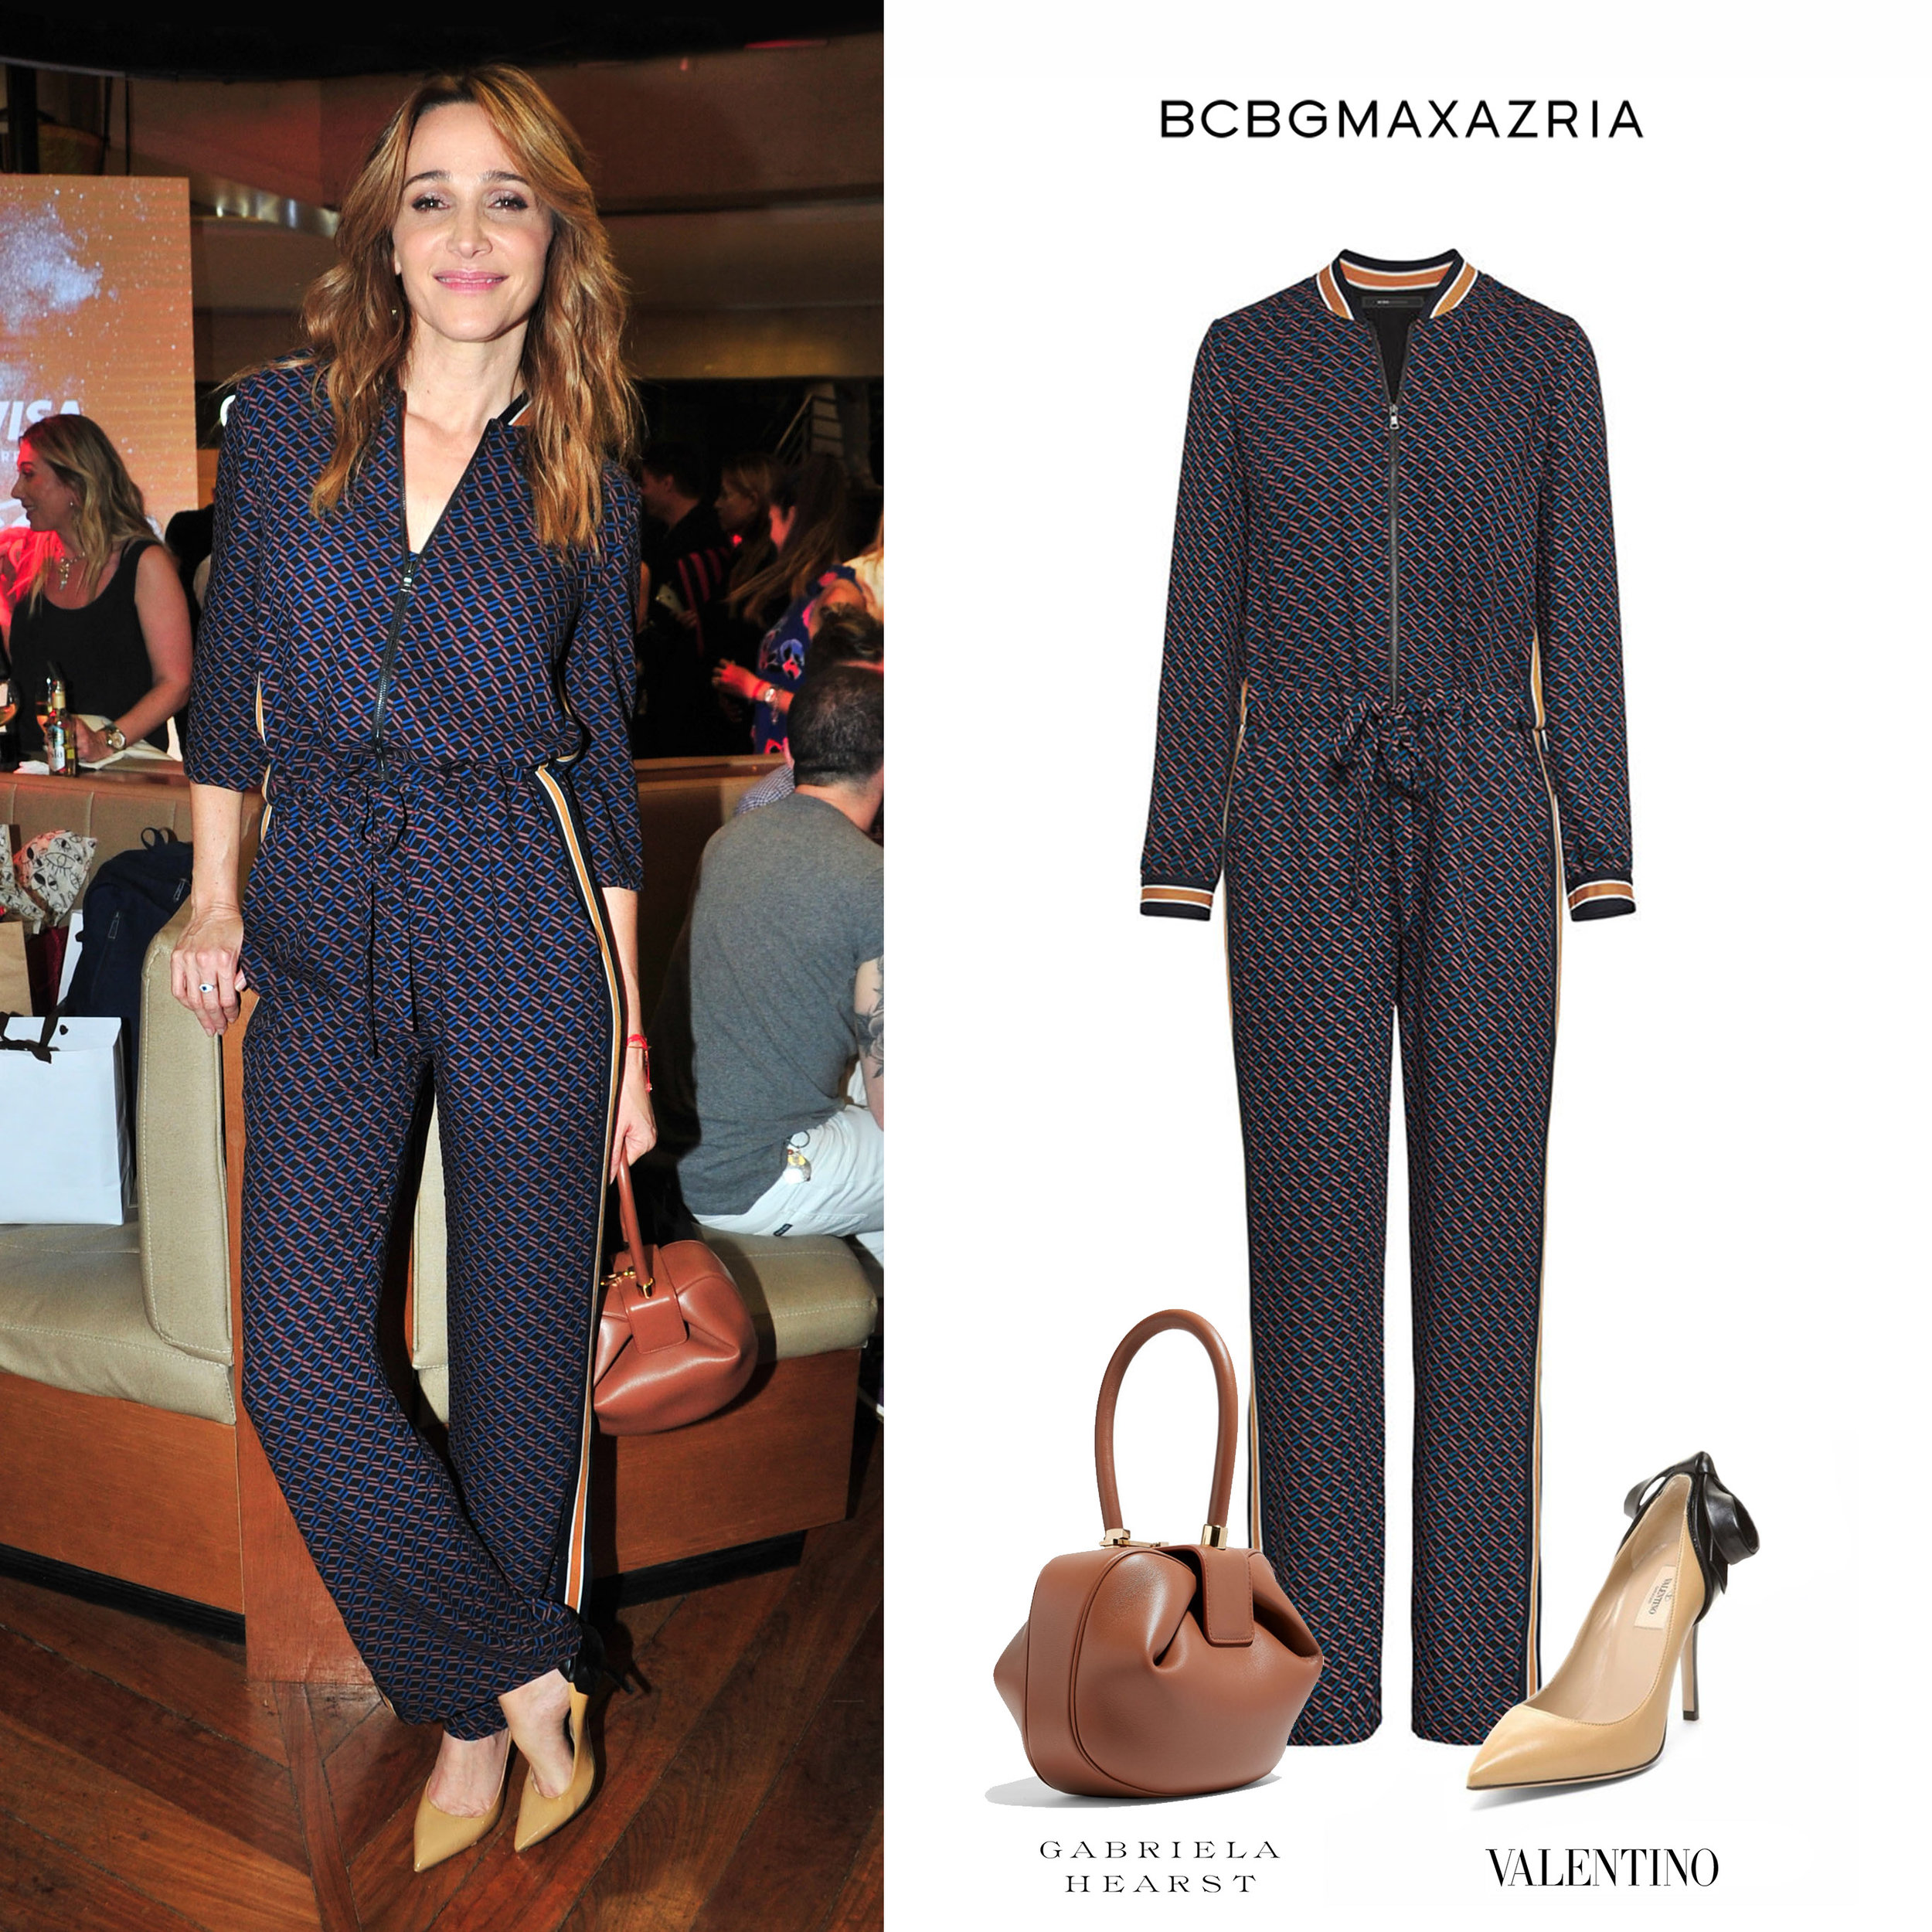 Vero_Veronica_Lozano_Visa_Edition_Paseo_Alcorta_Mono_BCBG_Max_Azria_Anson_Geometric_Jumpsuit_Mono_Zapatos_Valentino_Back_Row_Two_Tone_Bow_Stiletto_Pumps_Cartera_Gabriela_Hearst_Nina_Bag_2018.jpg